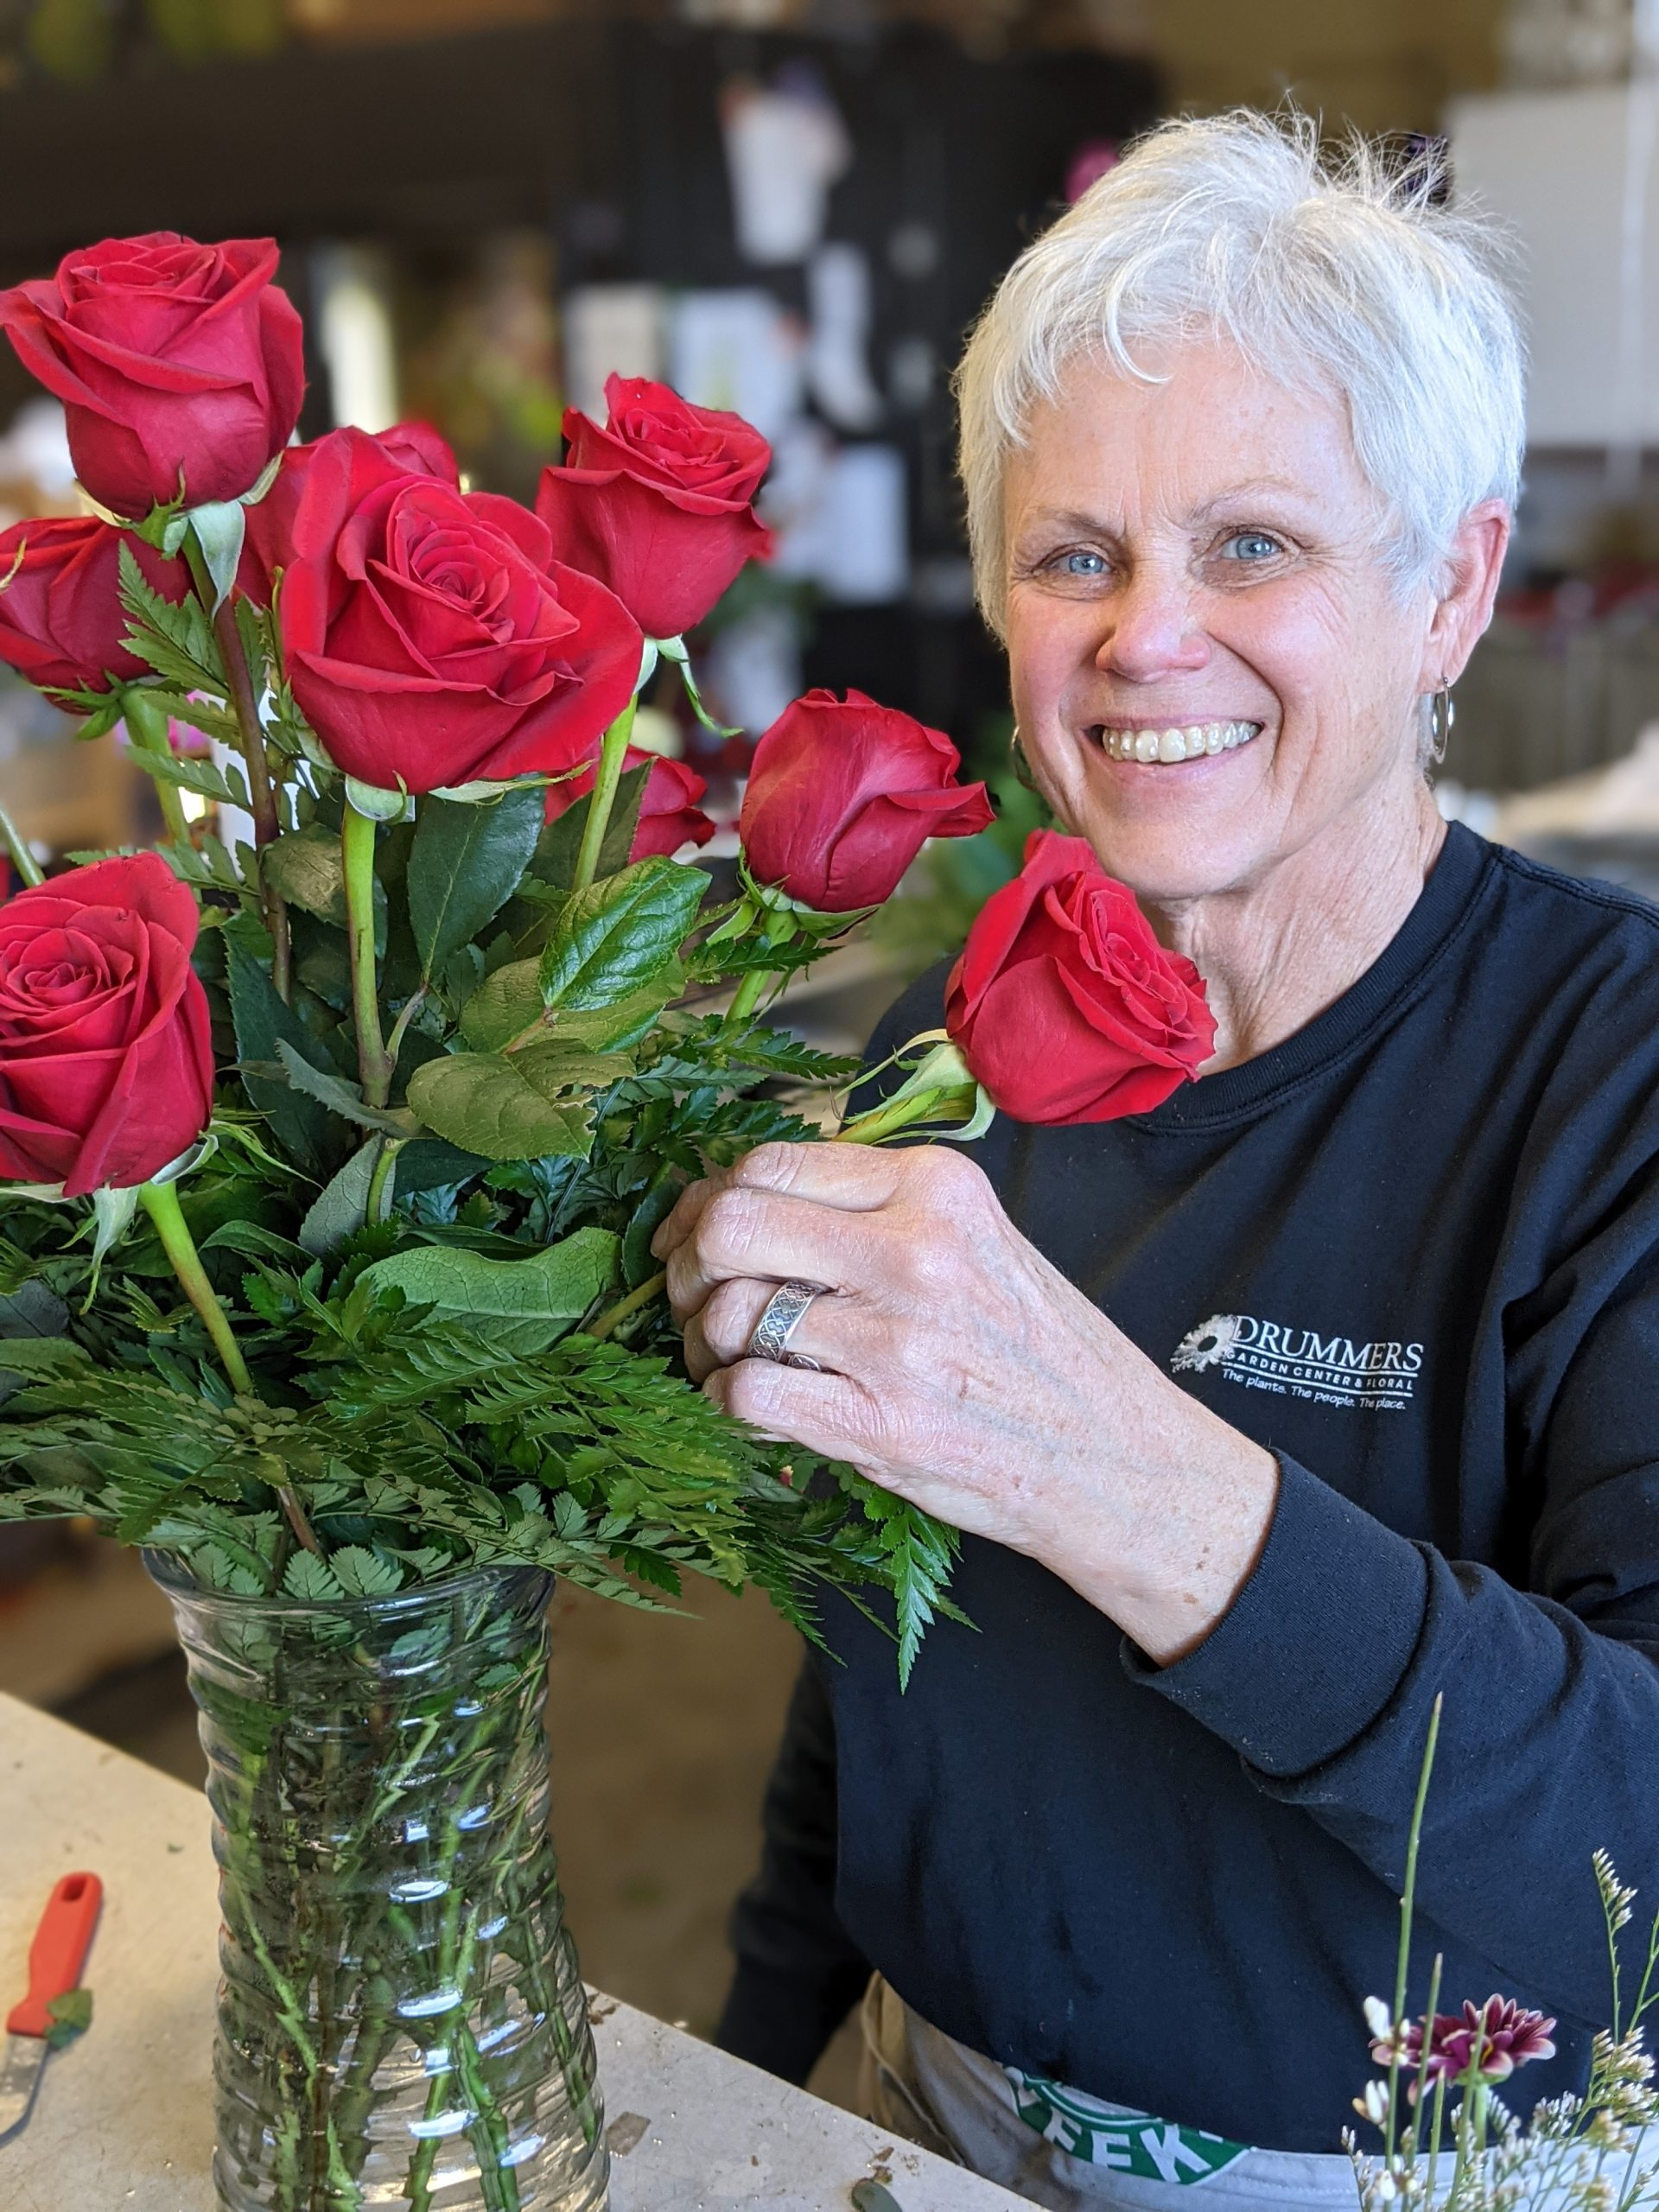 Nell florist making rose bouquet